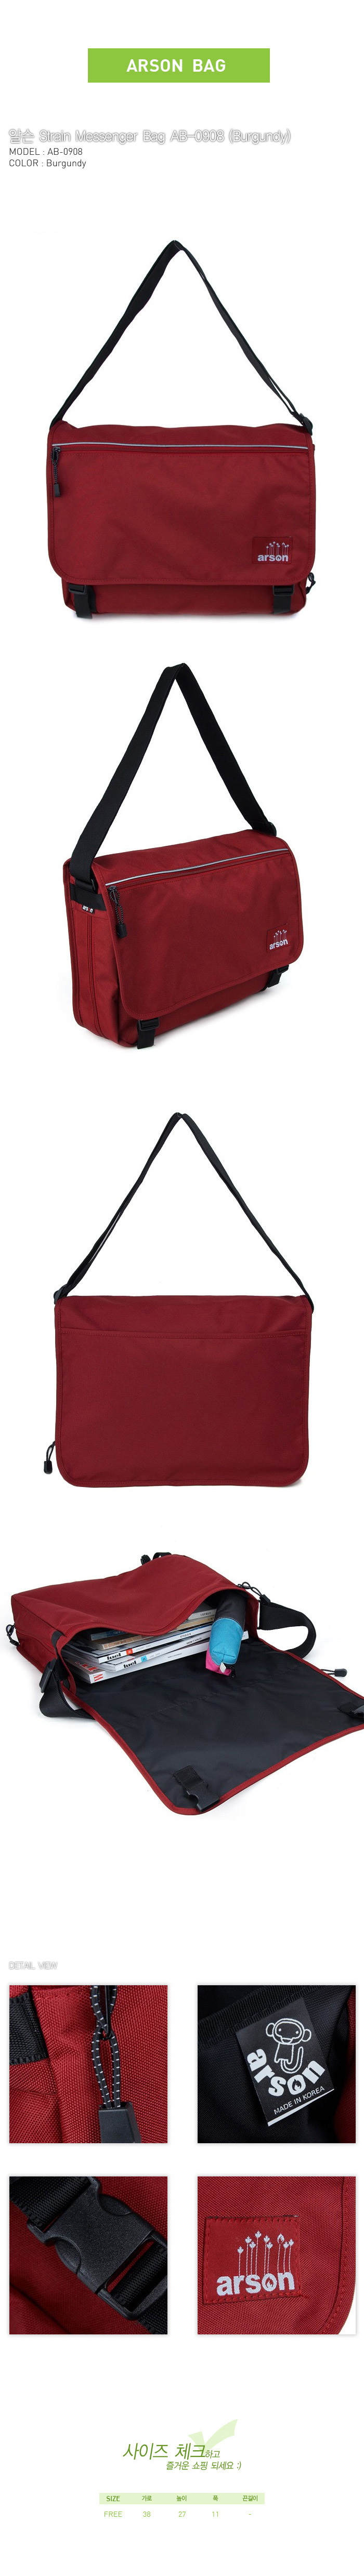 [ ARSON ] AB-0908 (Burgundy)/Messenger Cross Bag